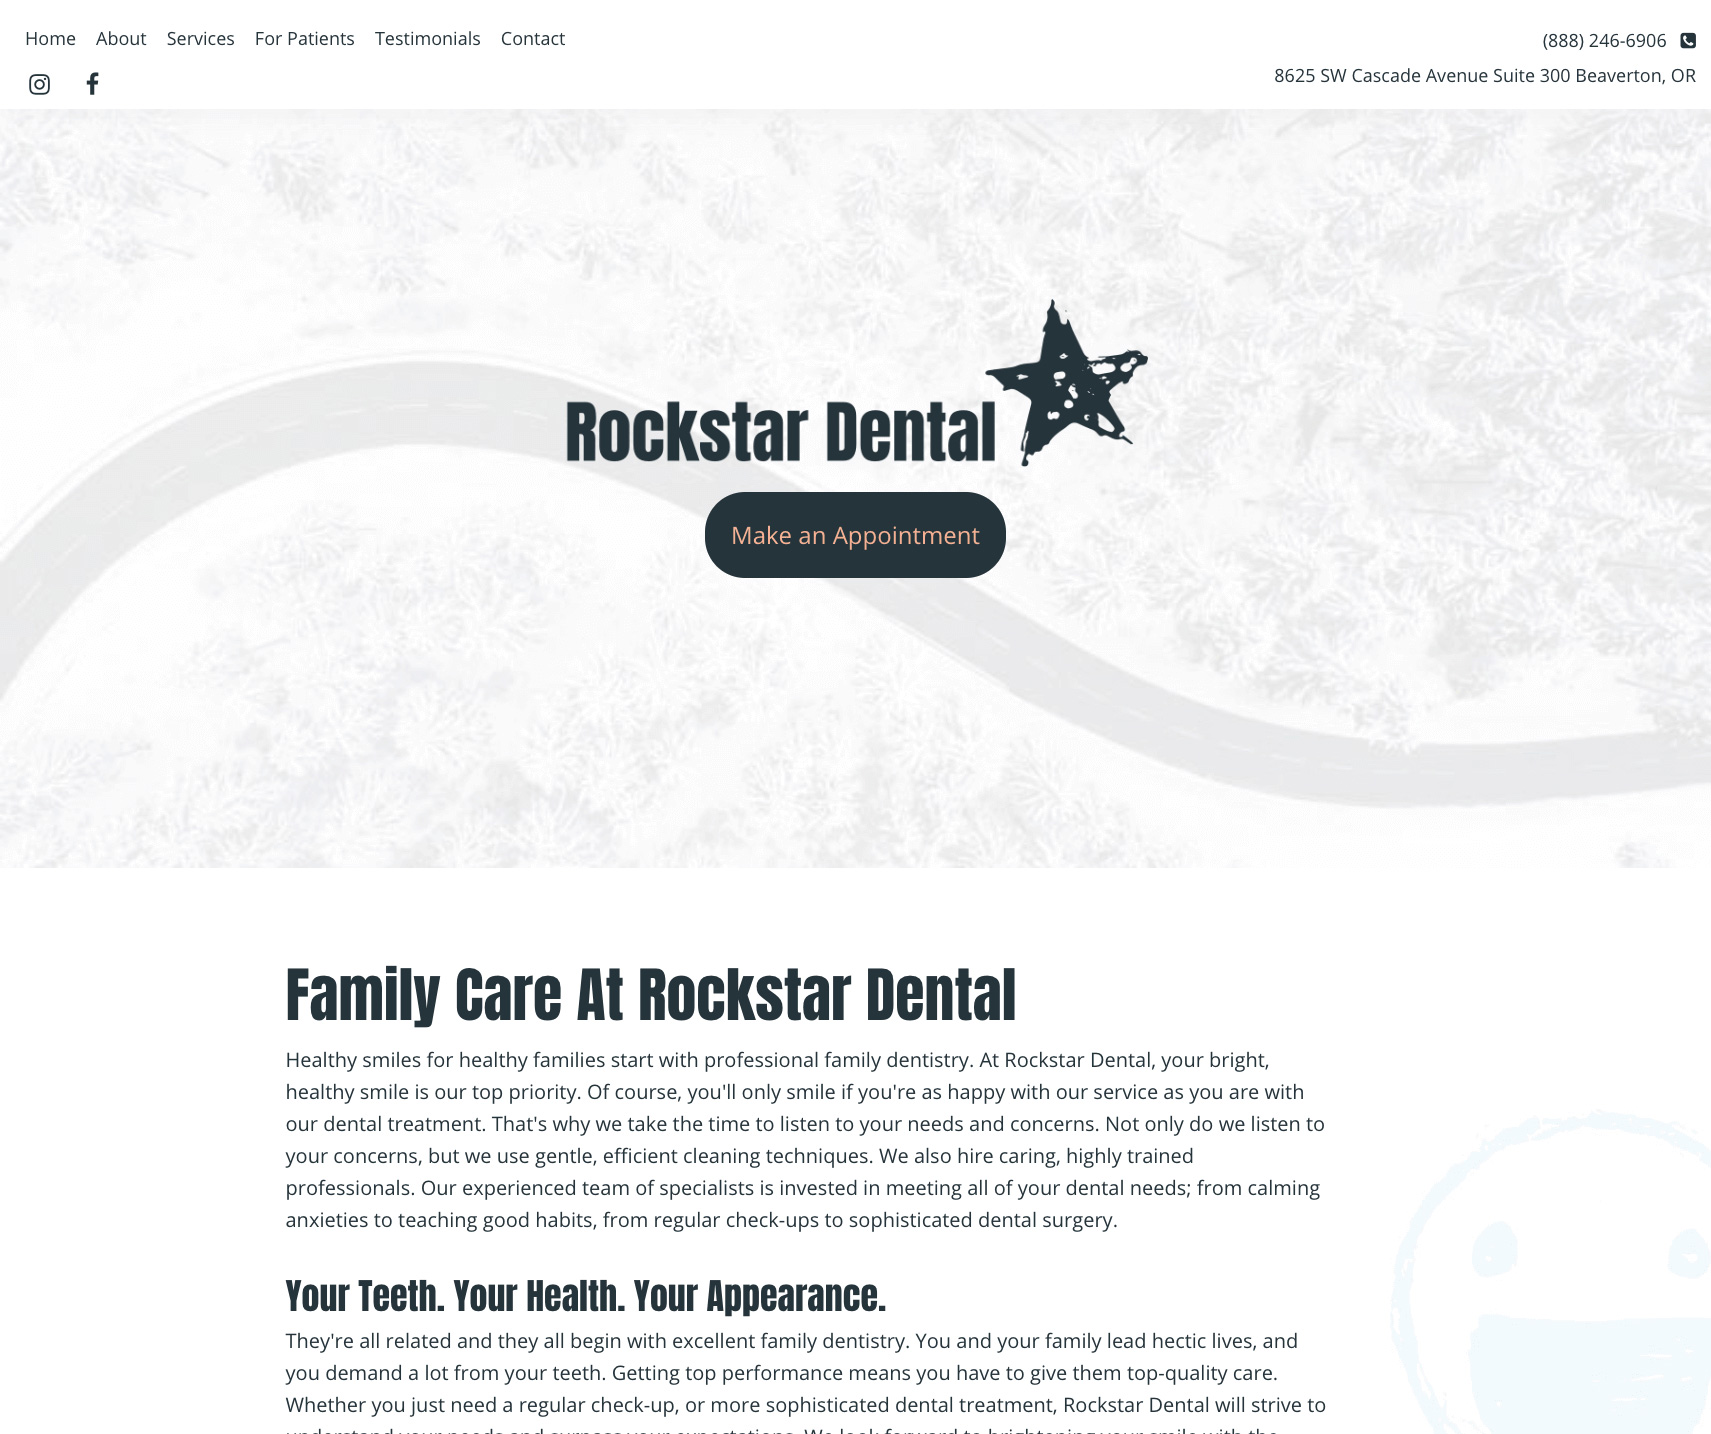 This is an example of our design called Rockstar dental